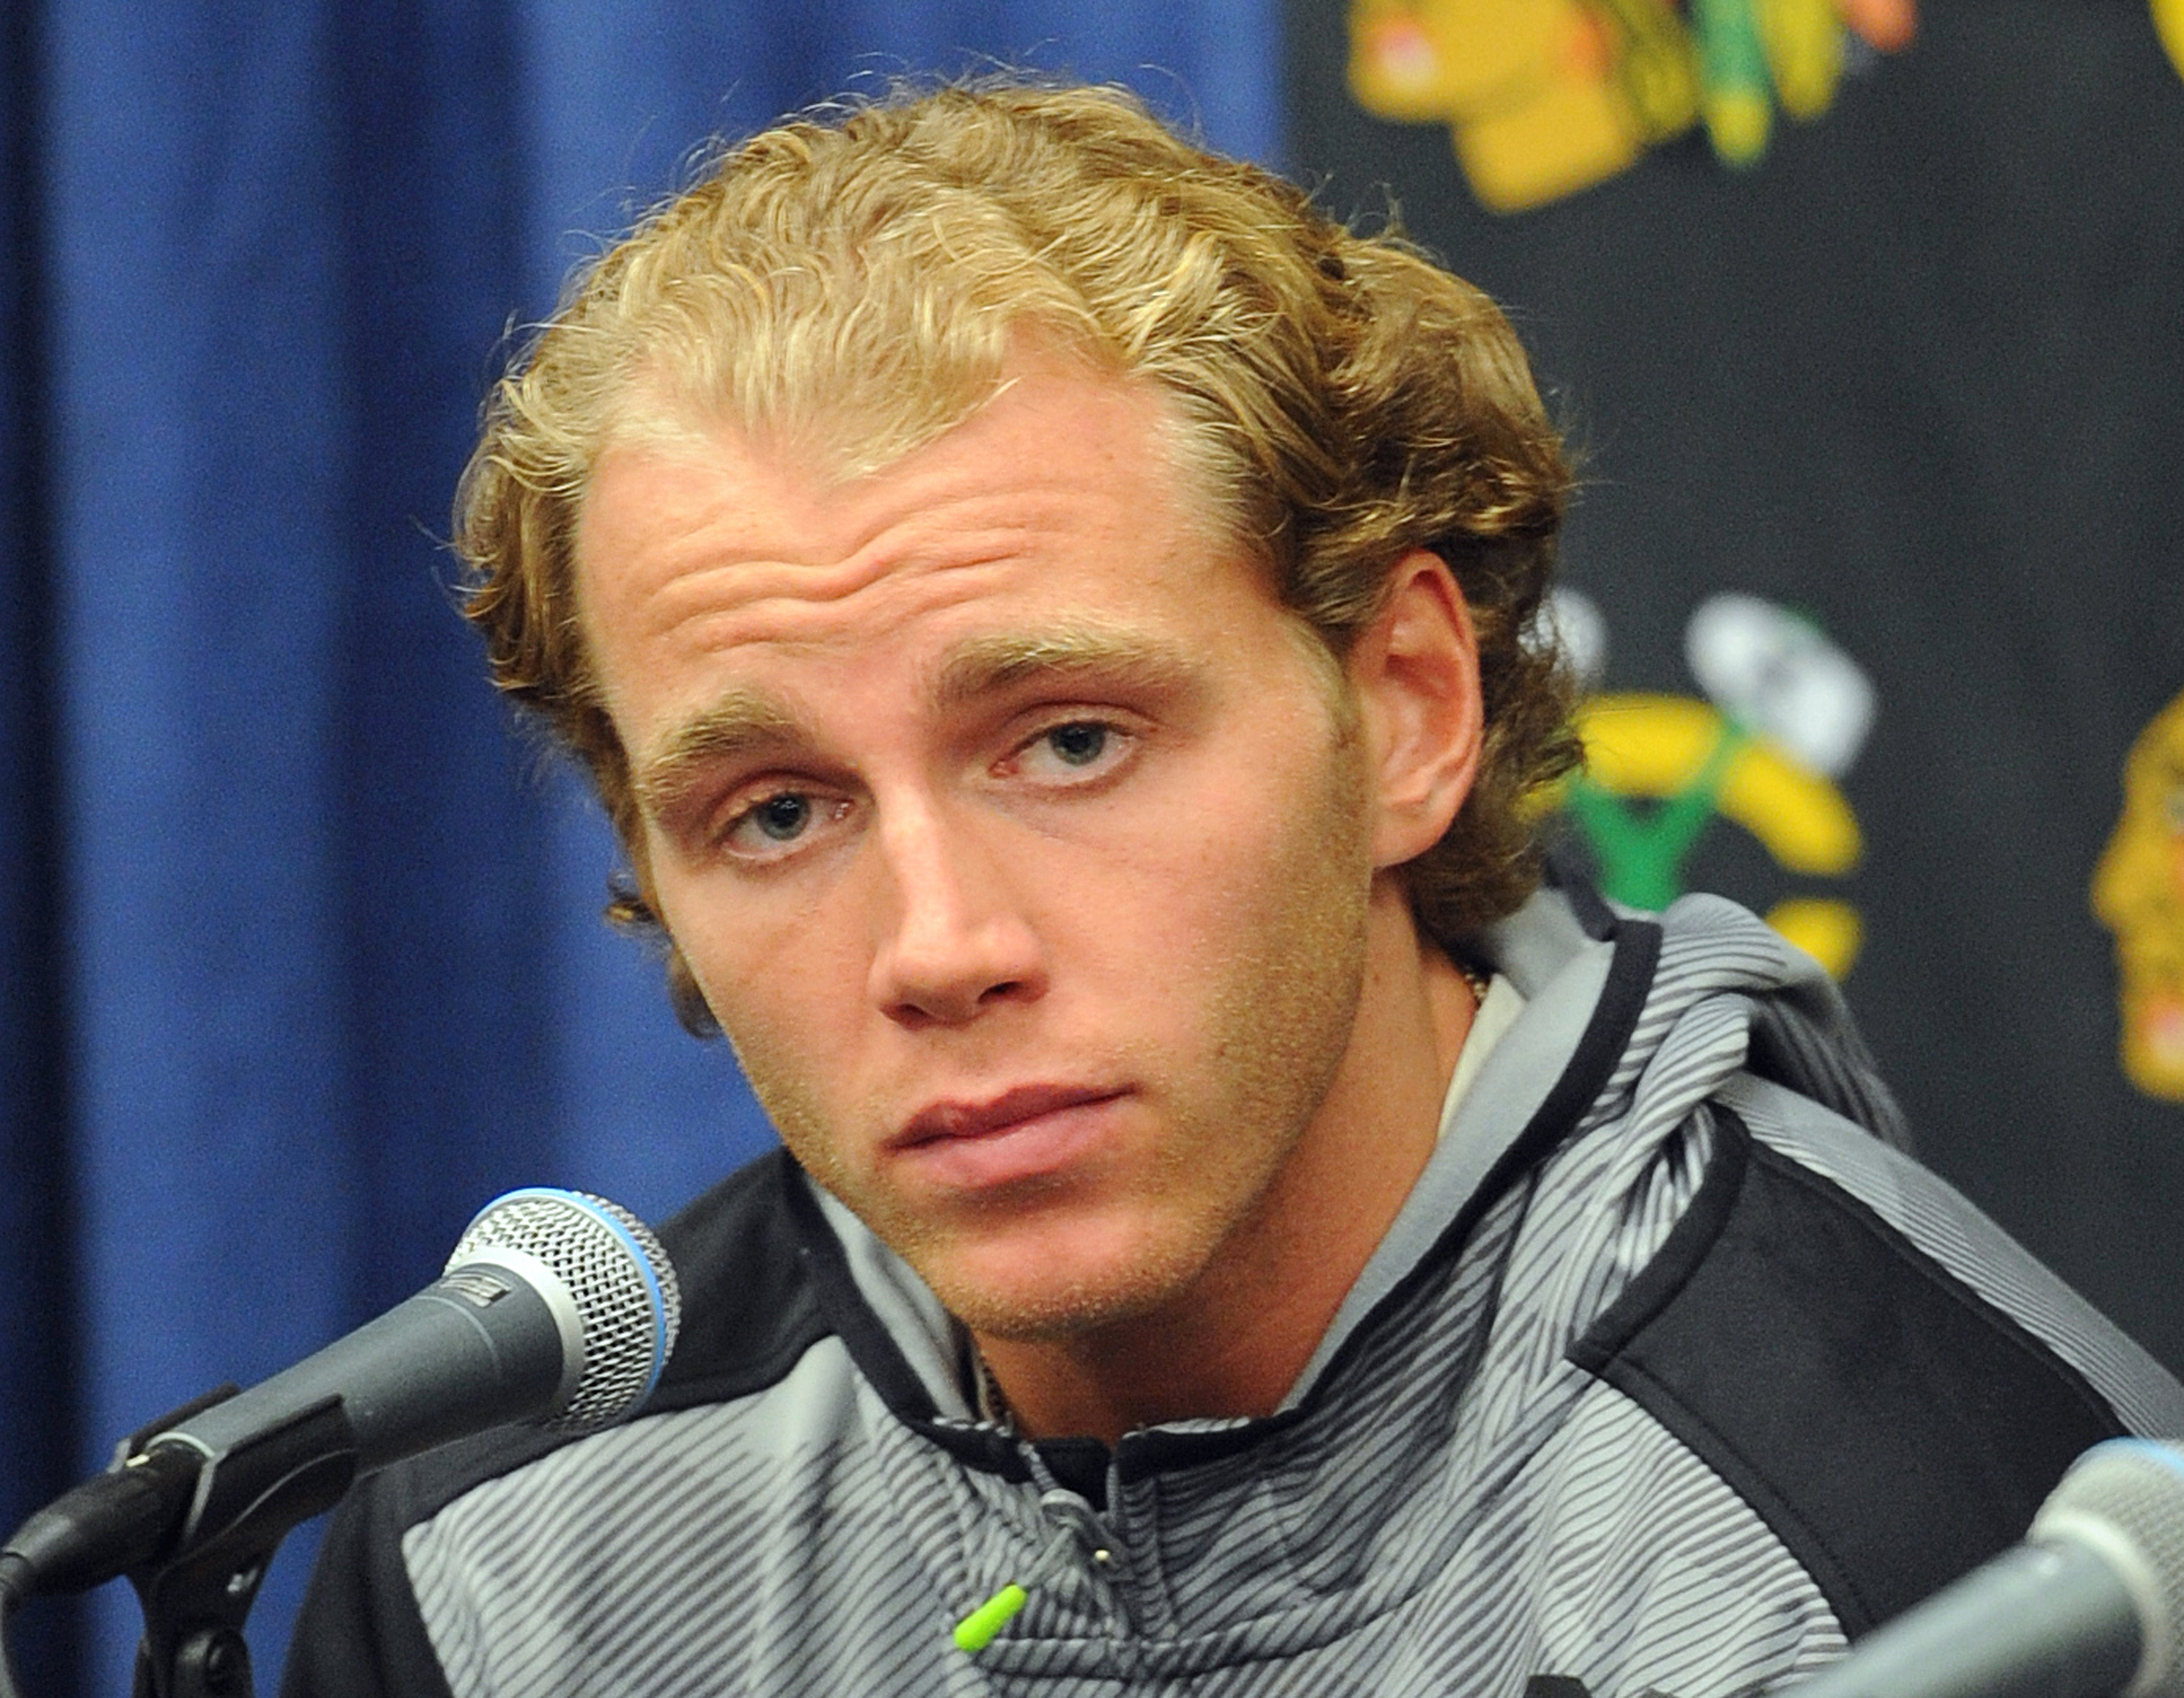 FILE - In this Sept. 17, 2015, file photo, Chicago Blackhawks' Patrick Kane listens during a media availability on the first day of NHL hockey training camp at the Compton Family Ice Center on the campus of the University of Notre Dame in South Bend, Ind.